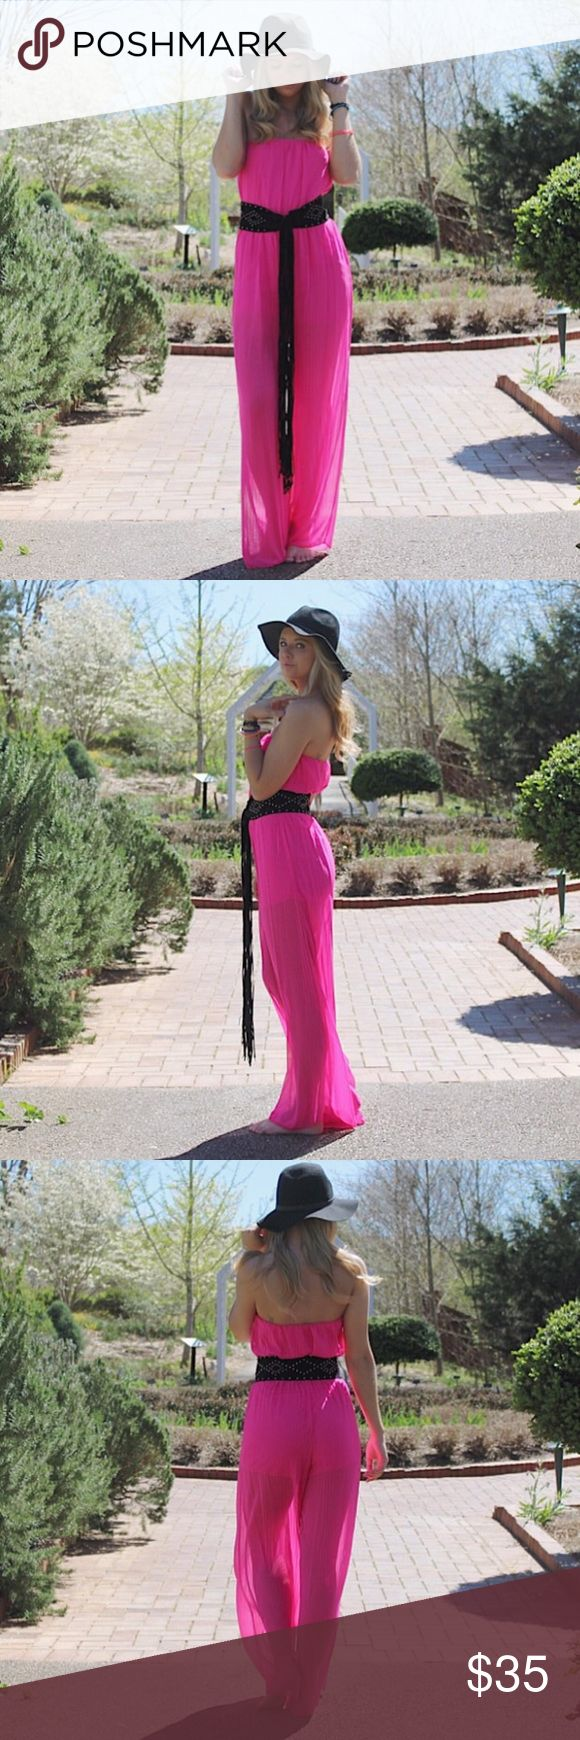 Fuchsia Jumpsuit •sleeveless (tube top) •wide leg  •sheer legs (exaggerated in photos because of the sunlight) •black accessories not included •gold waist-chain belt included •super comfortable  •available in S, M, and L •all brand new from warehouse Pants Jumpsuits & Rompers